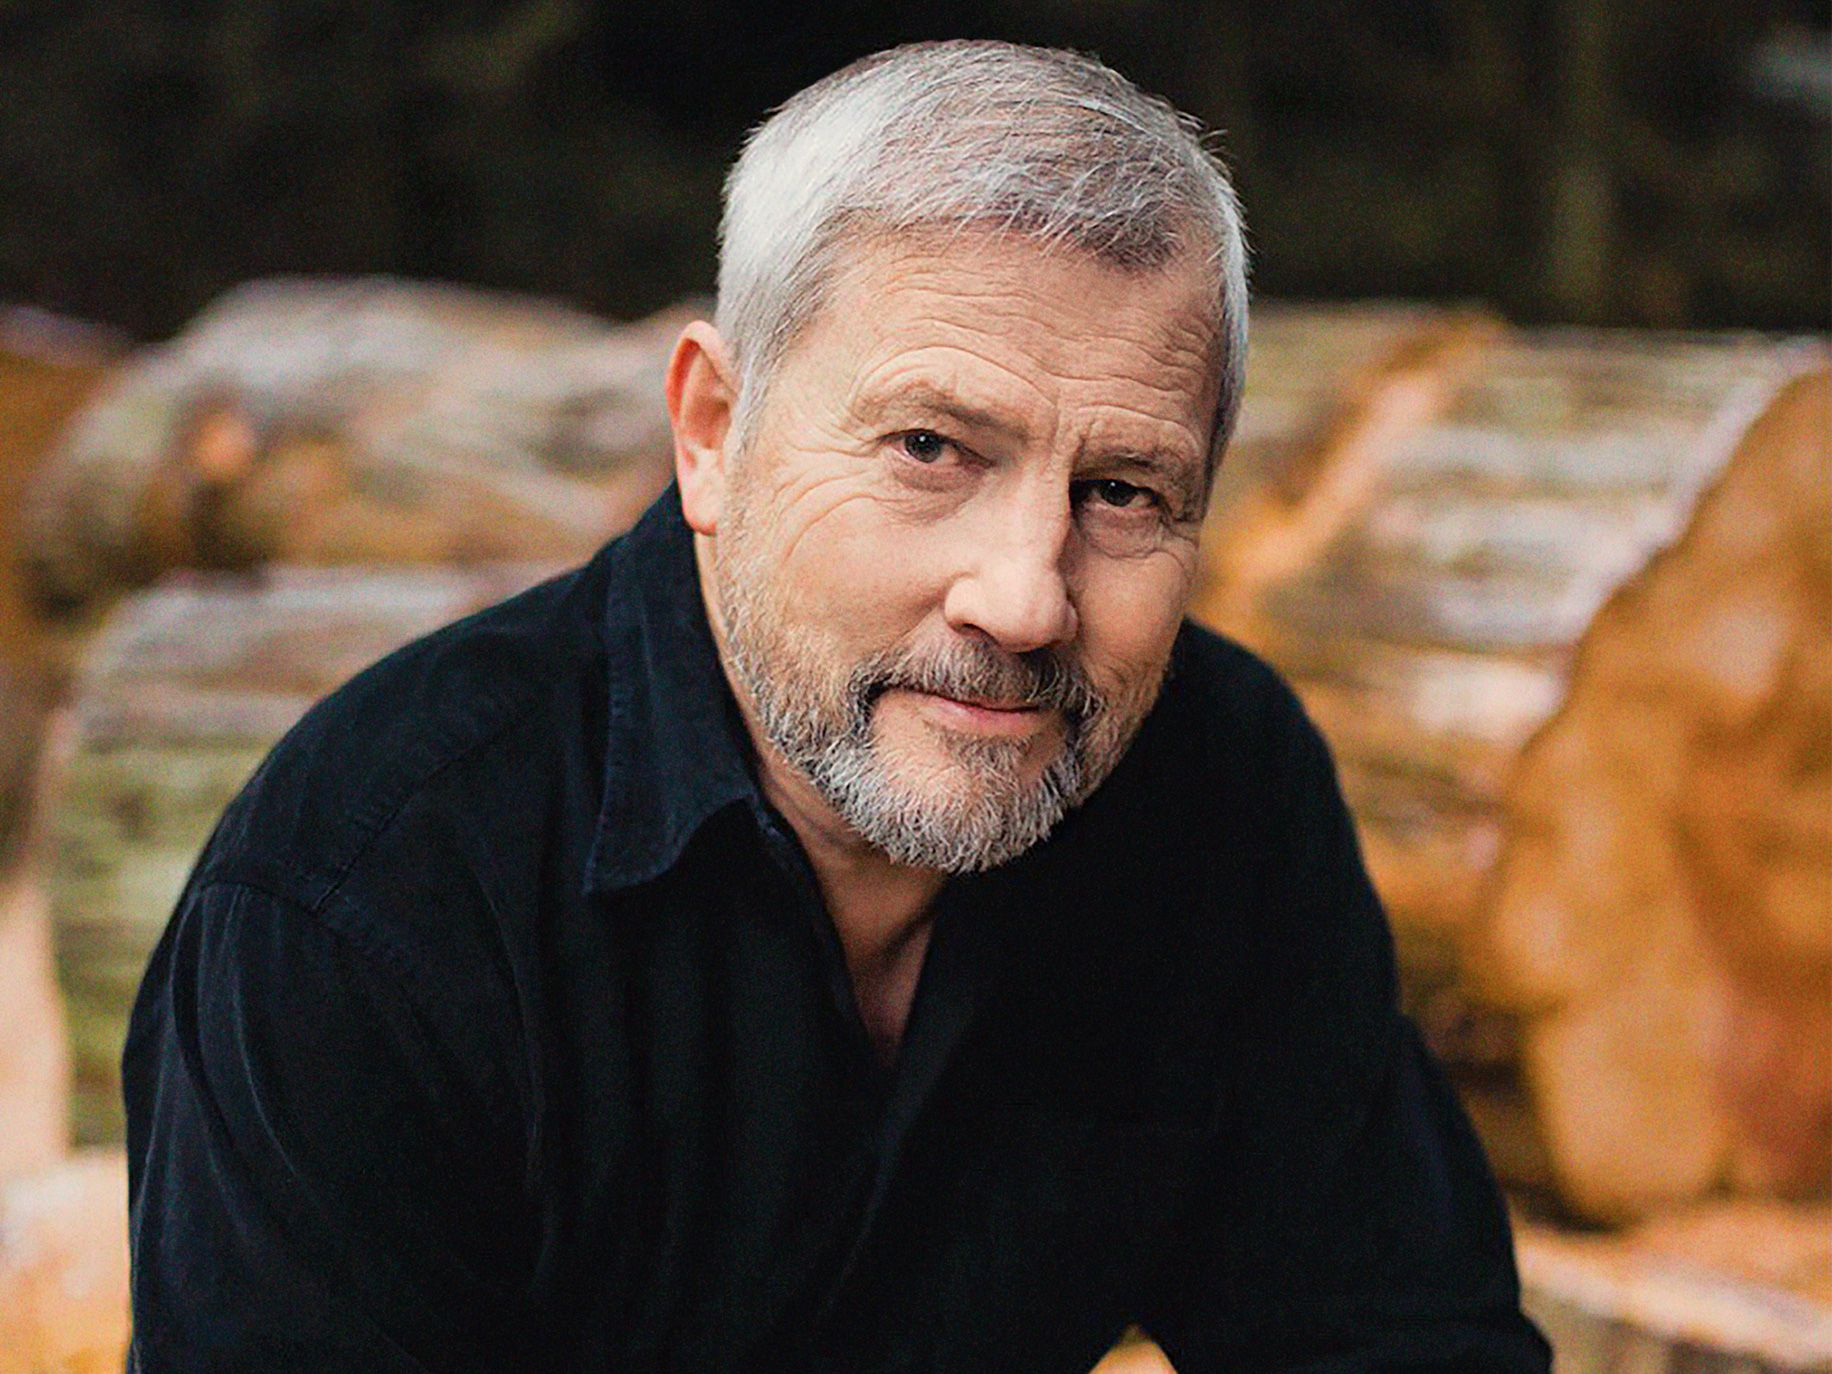 Karl Marlantes drew upon his experiences growing up in an Oregon logging town and working in commercial fishing to write [em]Deep River[/em].